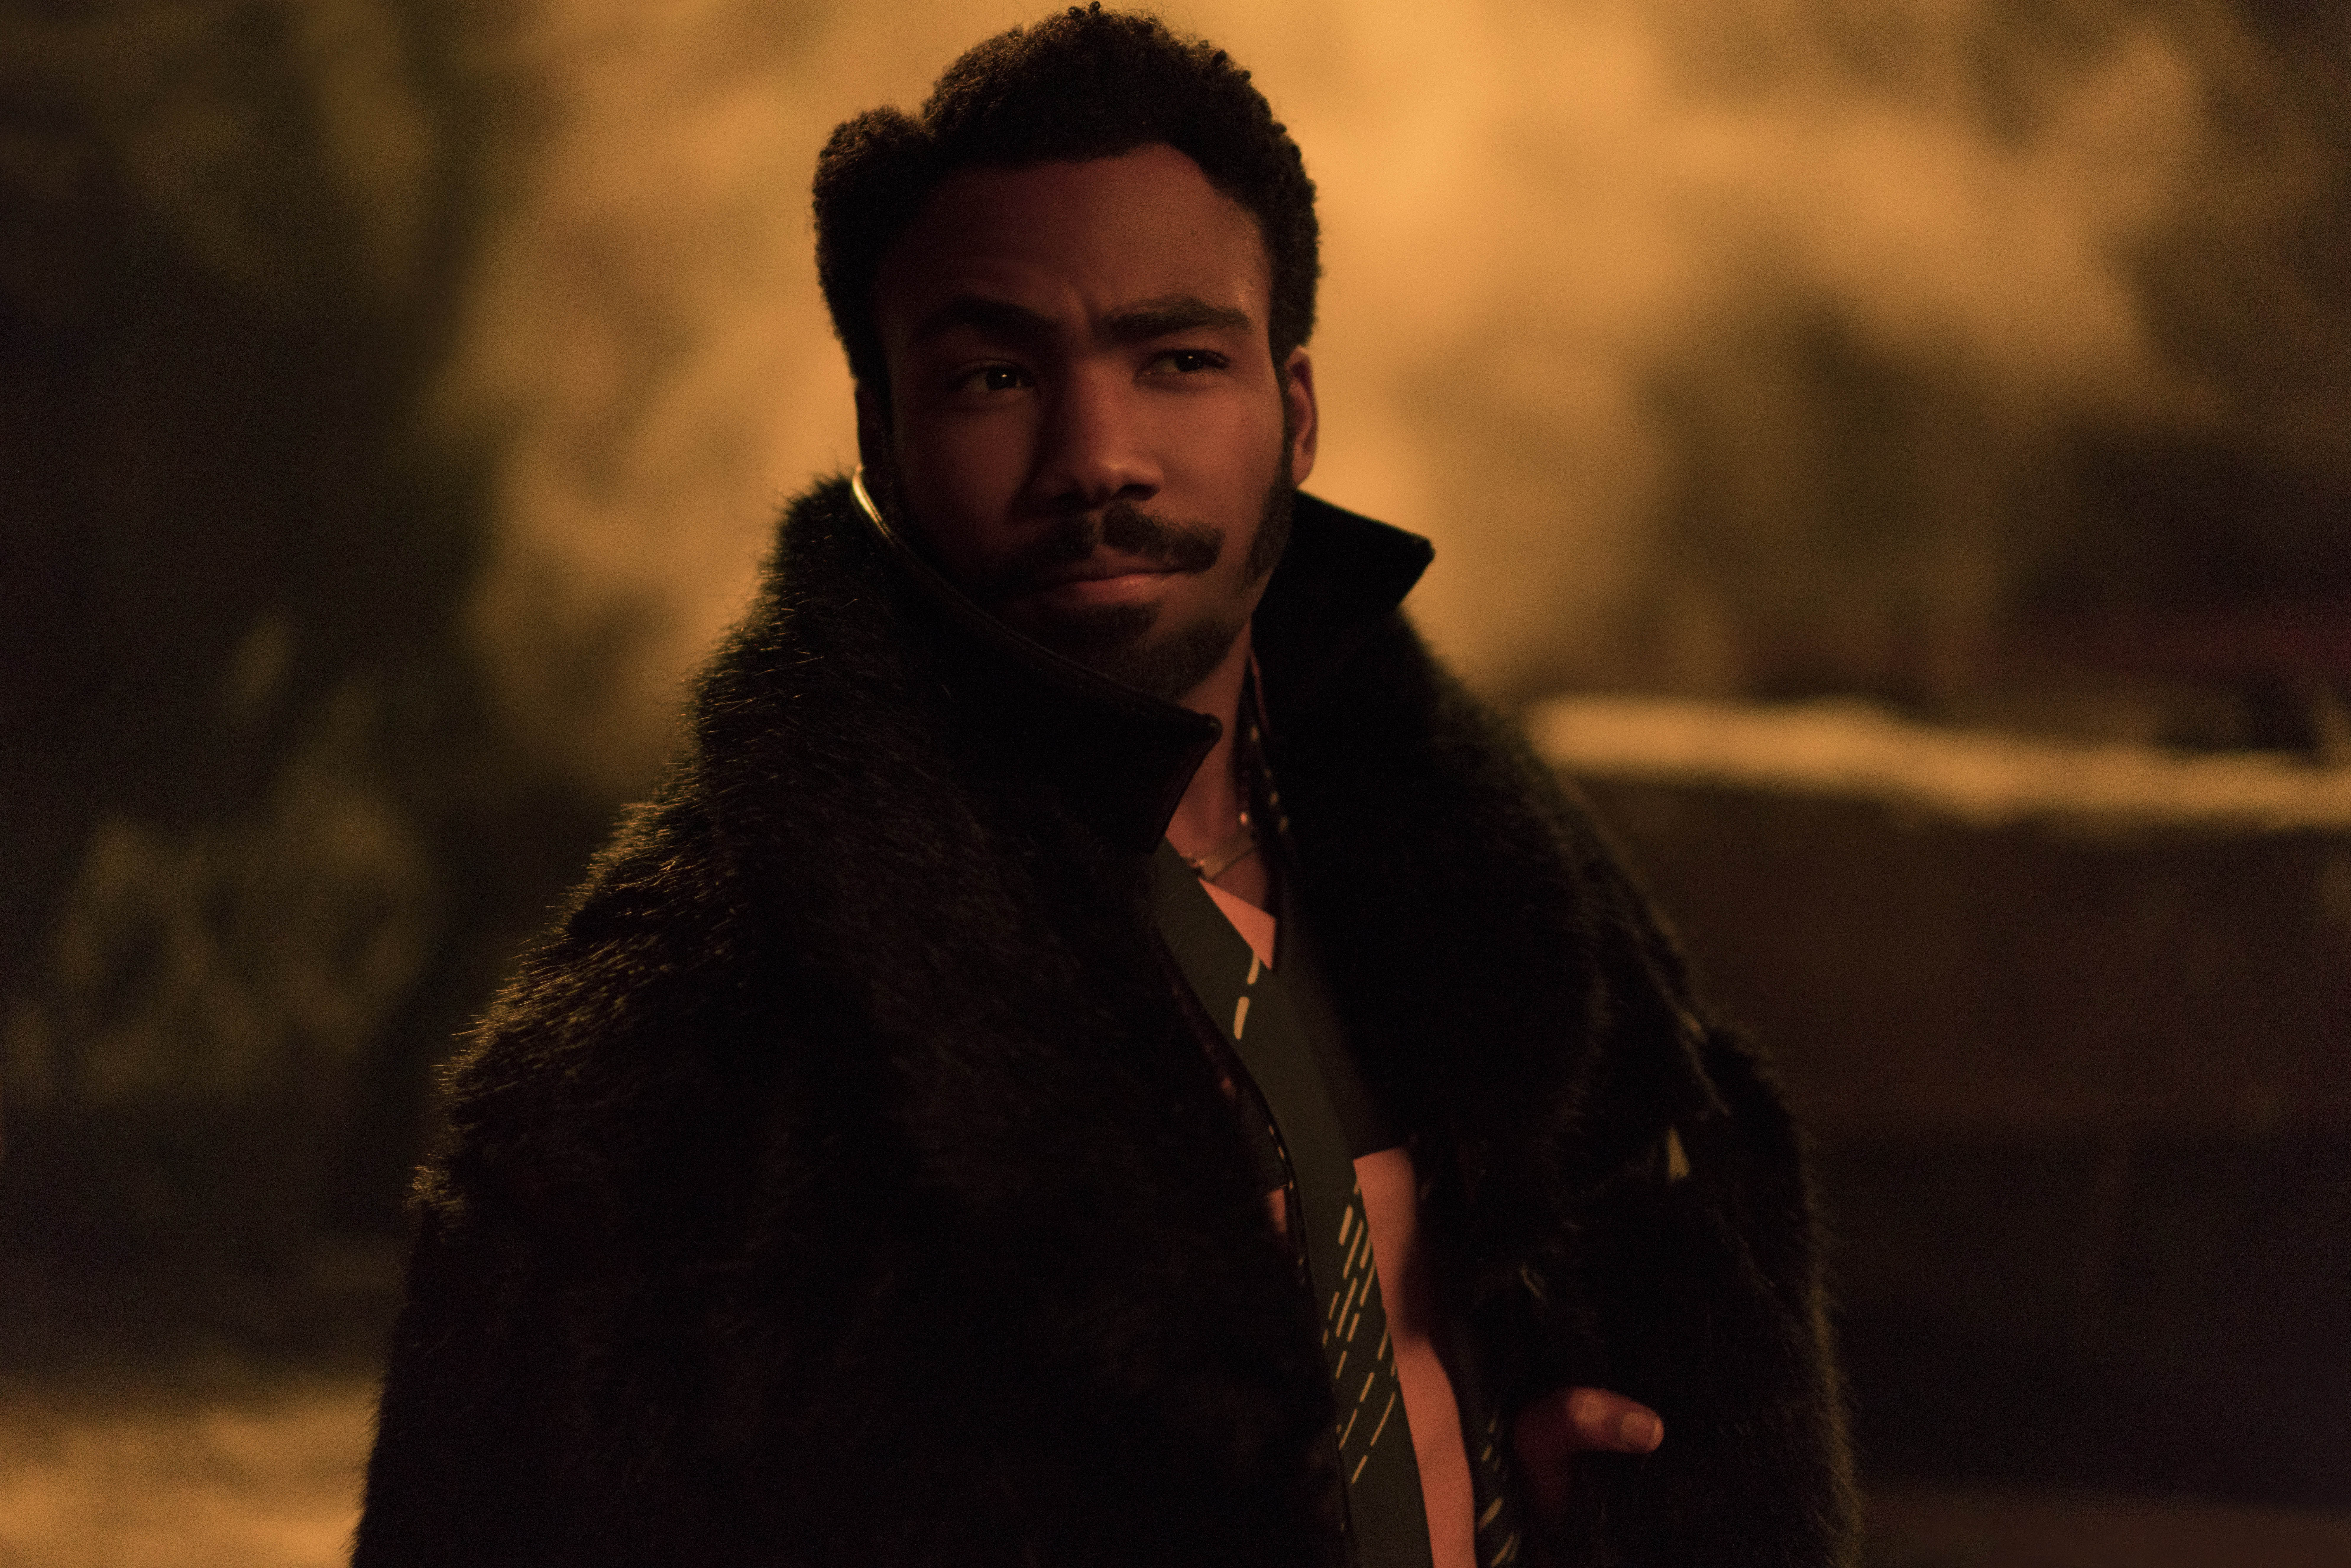 Donald Glover is Lando Calrissian in SOLO: A STAR WARS STORY. © 2017 Lucasfilm Ltd. & ™, All Rights Reserved.